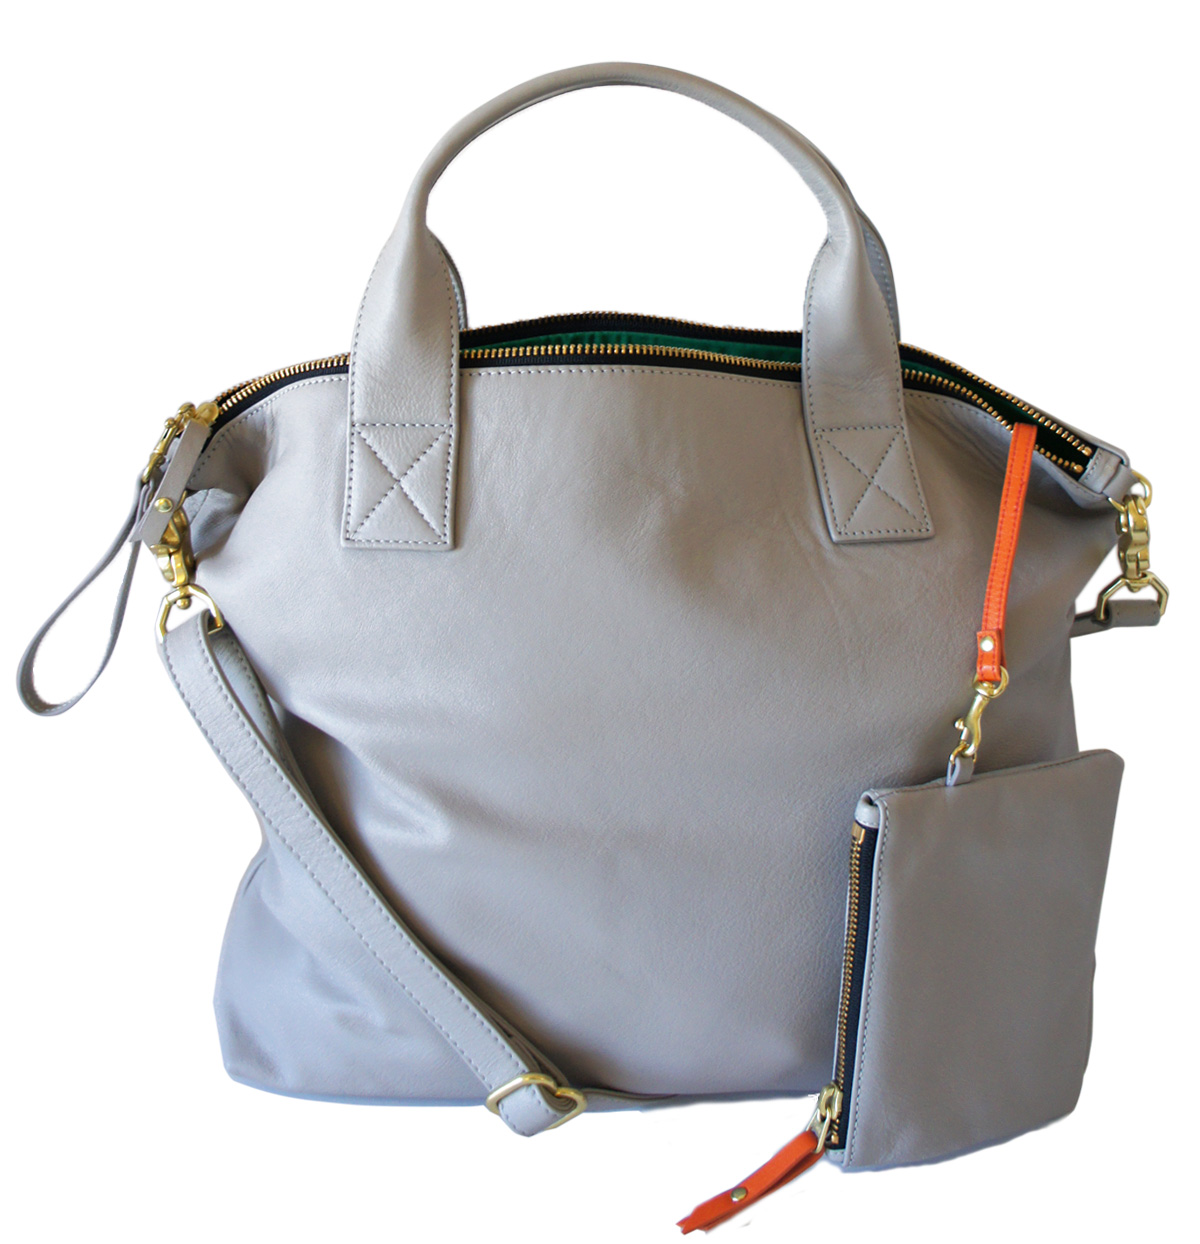 American made designer purses, handbags: Leather Bag from Blair Ritchey - Indie Designer - Made in Ohio #usalovelisted #madeinUSA